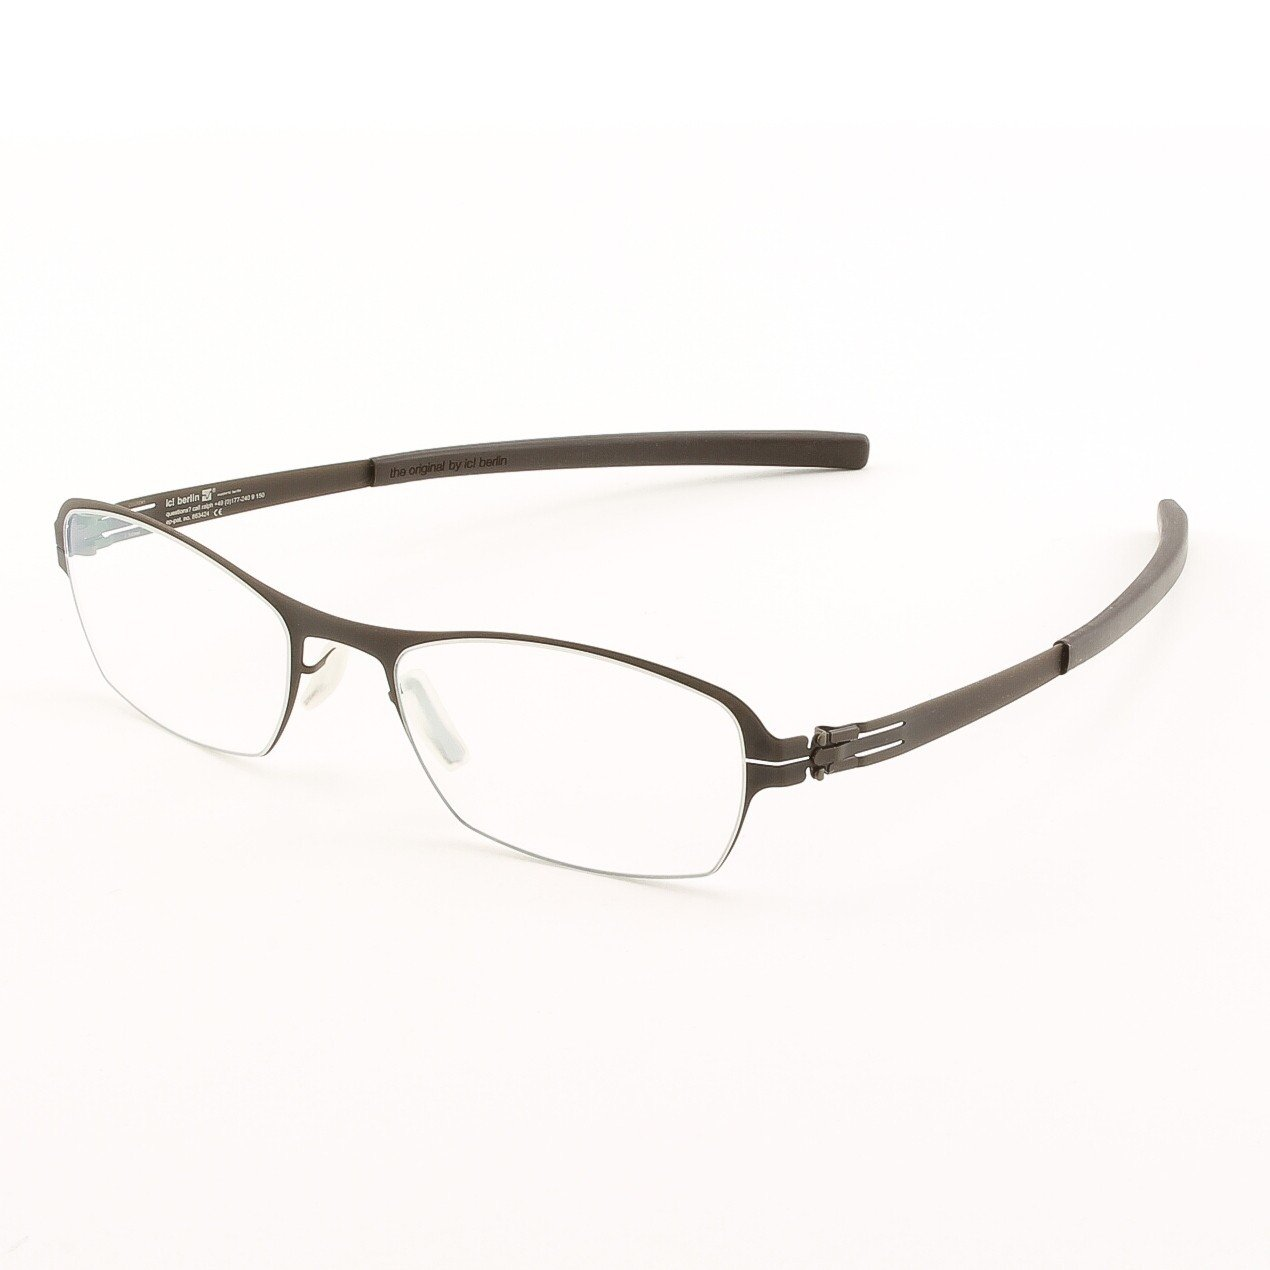 ic! Berlin Auf Dem Flusse Eyeglasses Col. Chocolate with Clear Lenses